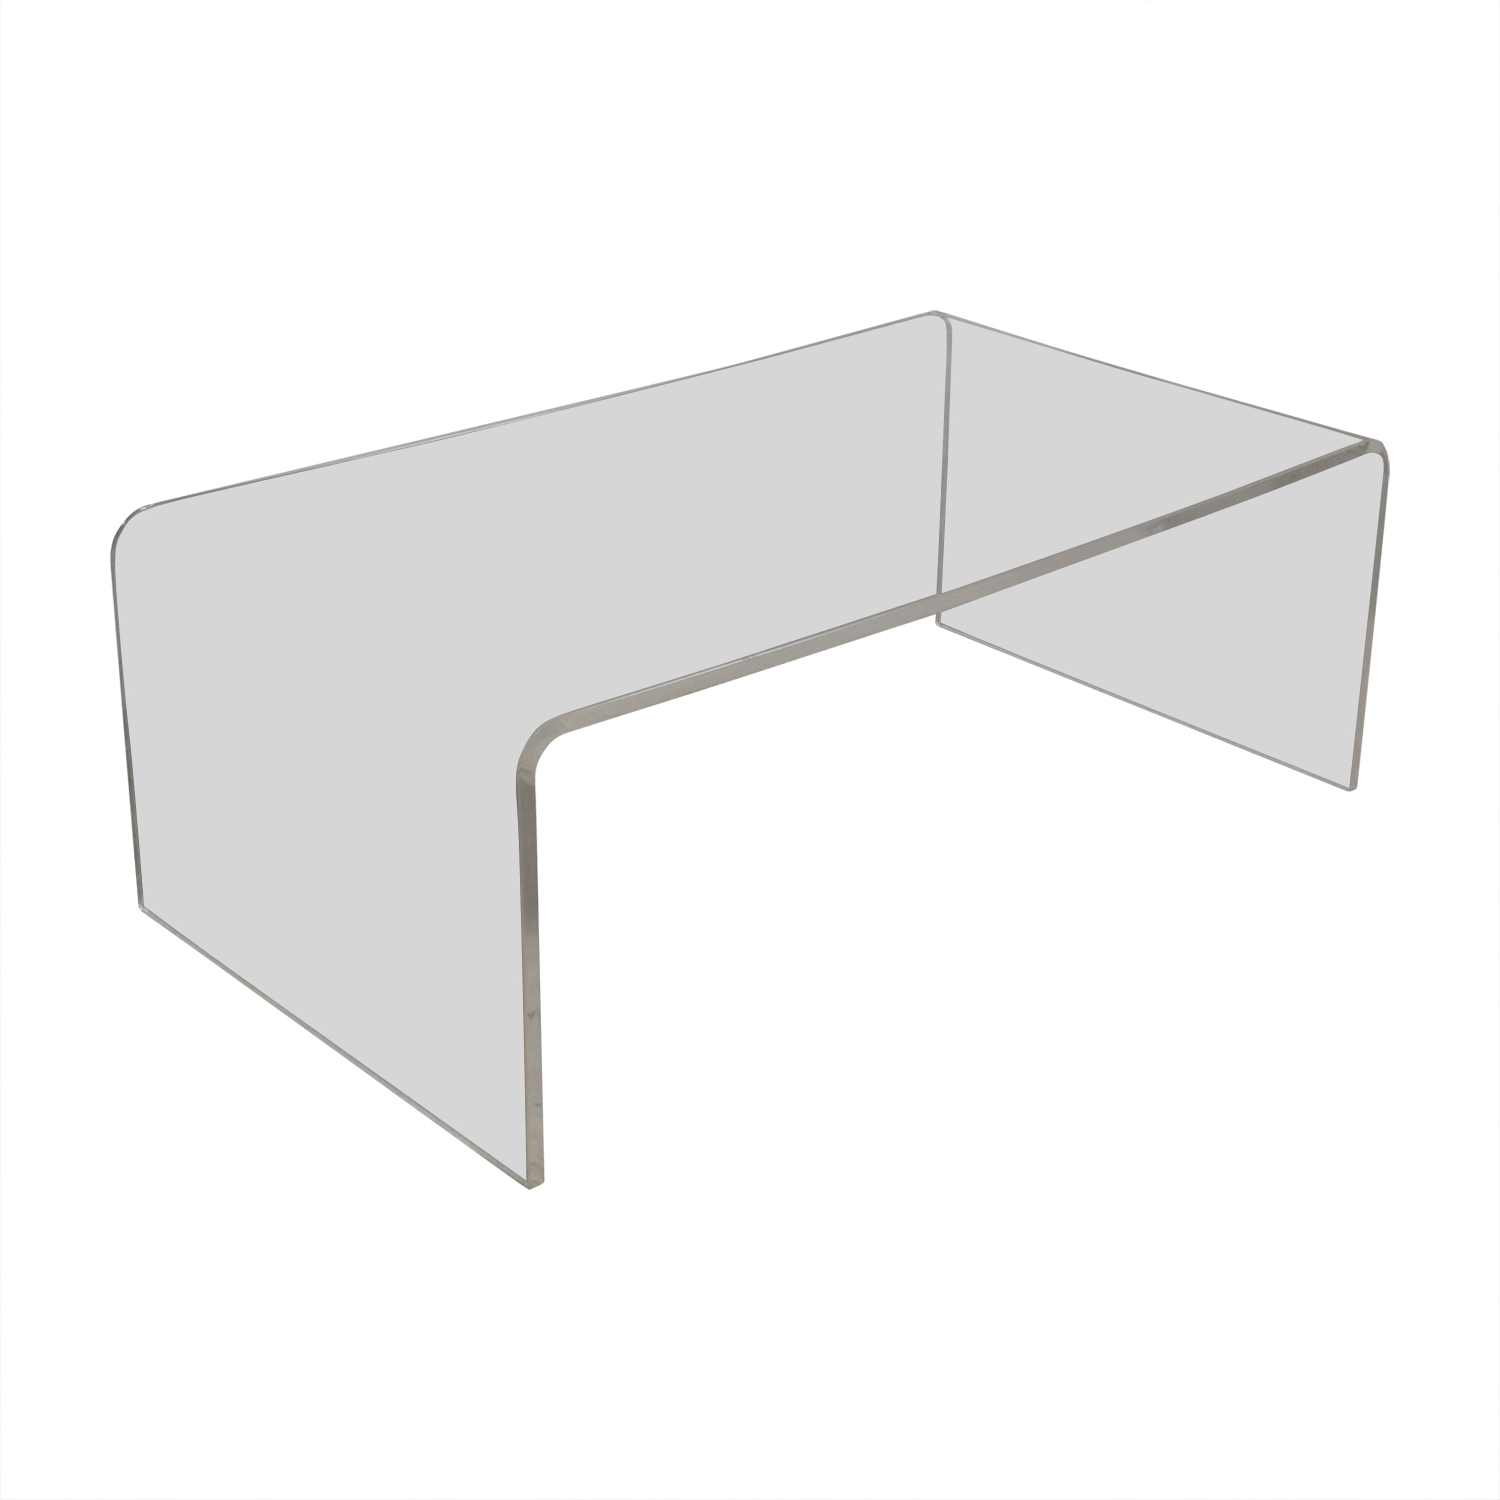 [%2017 Peekaboo Acrylic Tall Coffee Tables With Regard To 61% Off – Cb2 Cb2 Peekaboo Acrylic Ghost Tall Coffee Table / Tables|61% Off – Cb2 Cb2 Peekaboo Acrylic Ghost Tall Coffee Table / Tables Inside Preferred Peekaboo Acrylic Tall Coffee Tables%] (View 1 of 20)